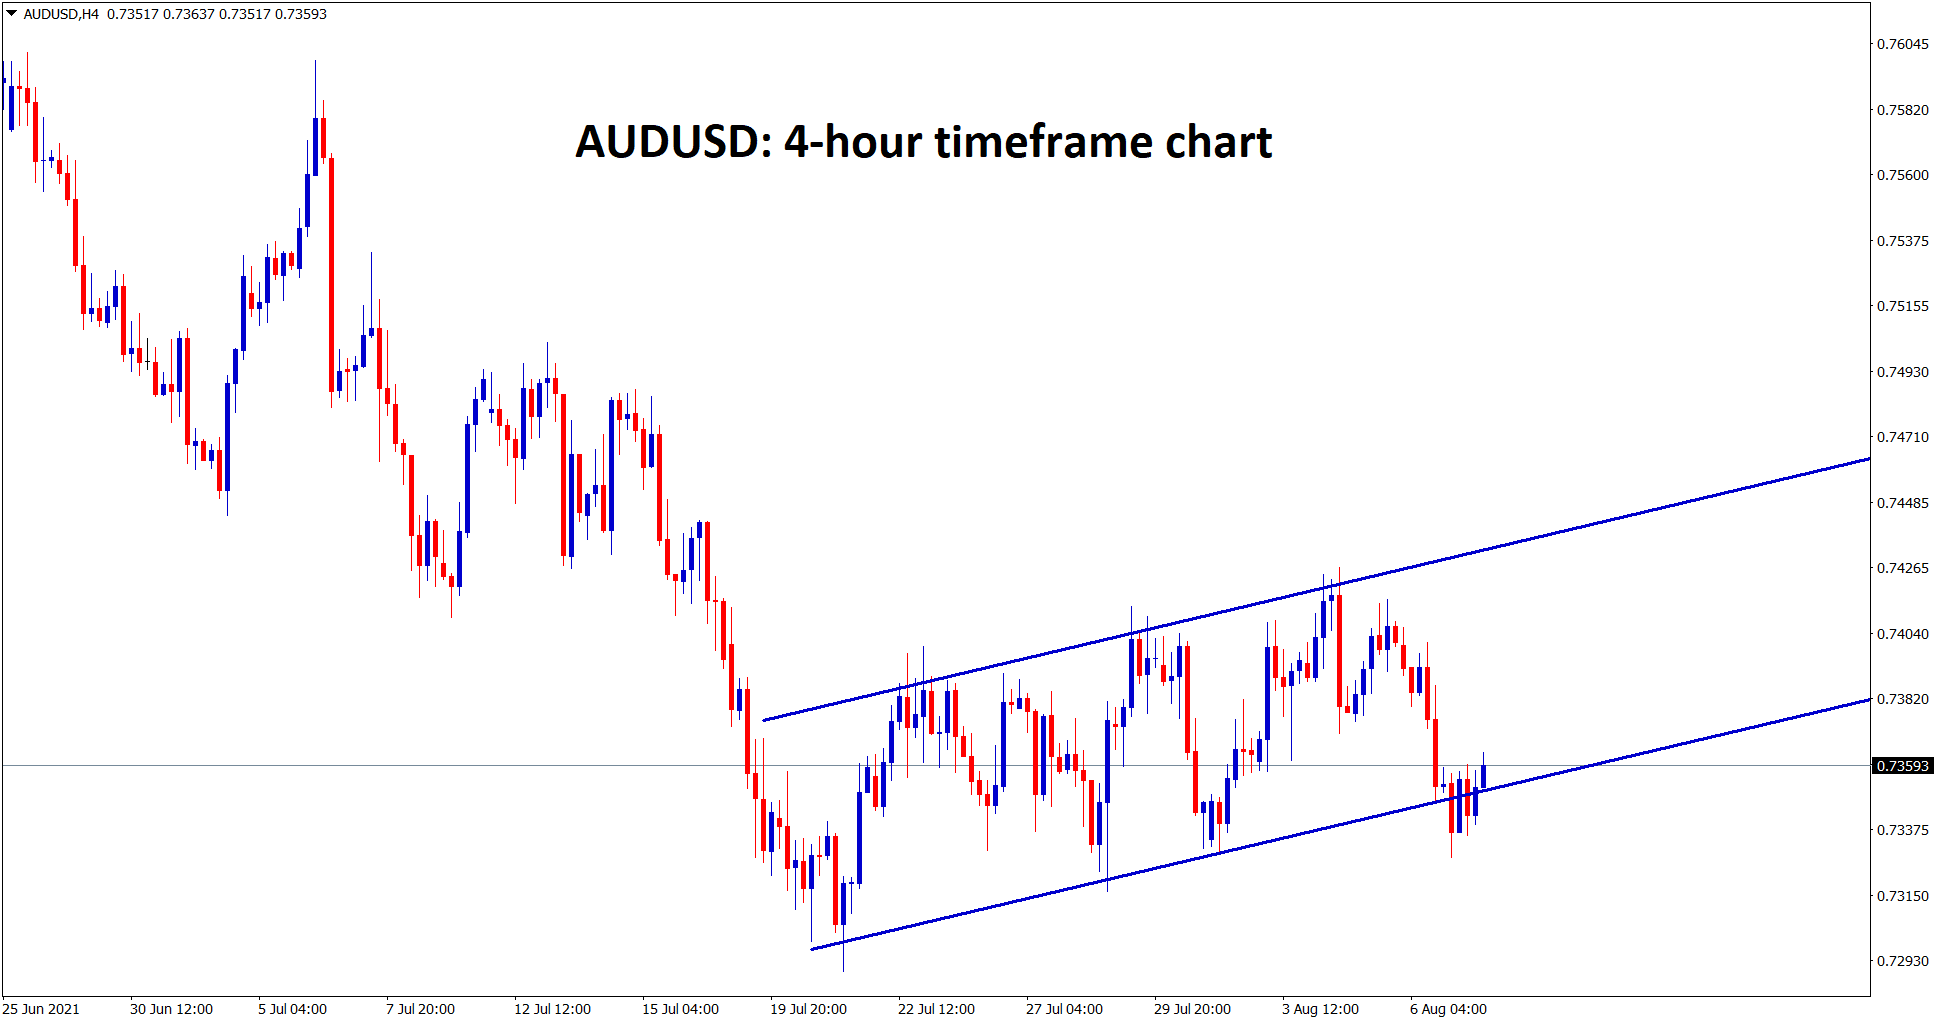 AUDUSD is still consolidating at this specific price levels